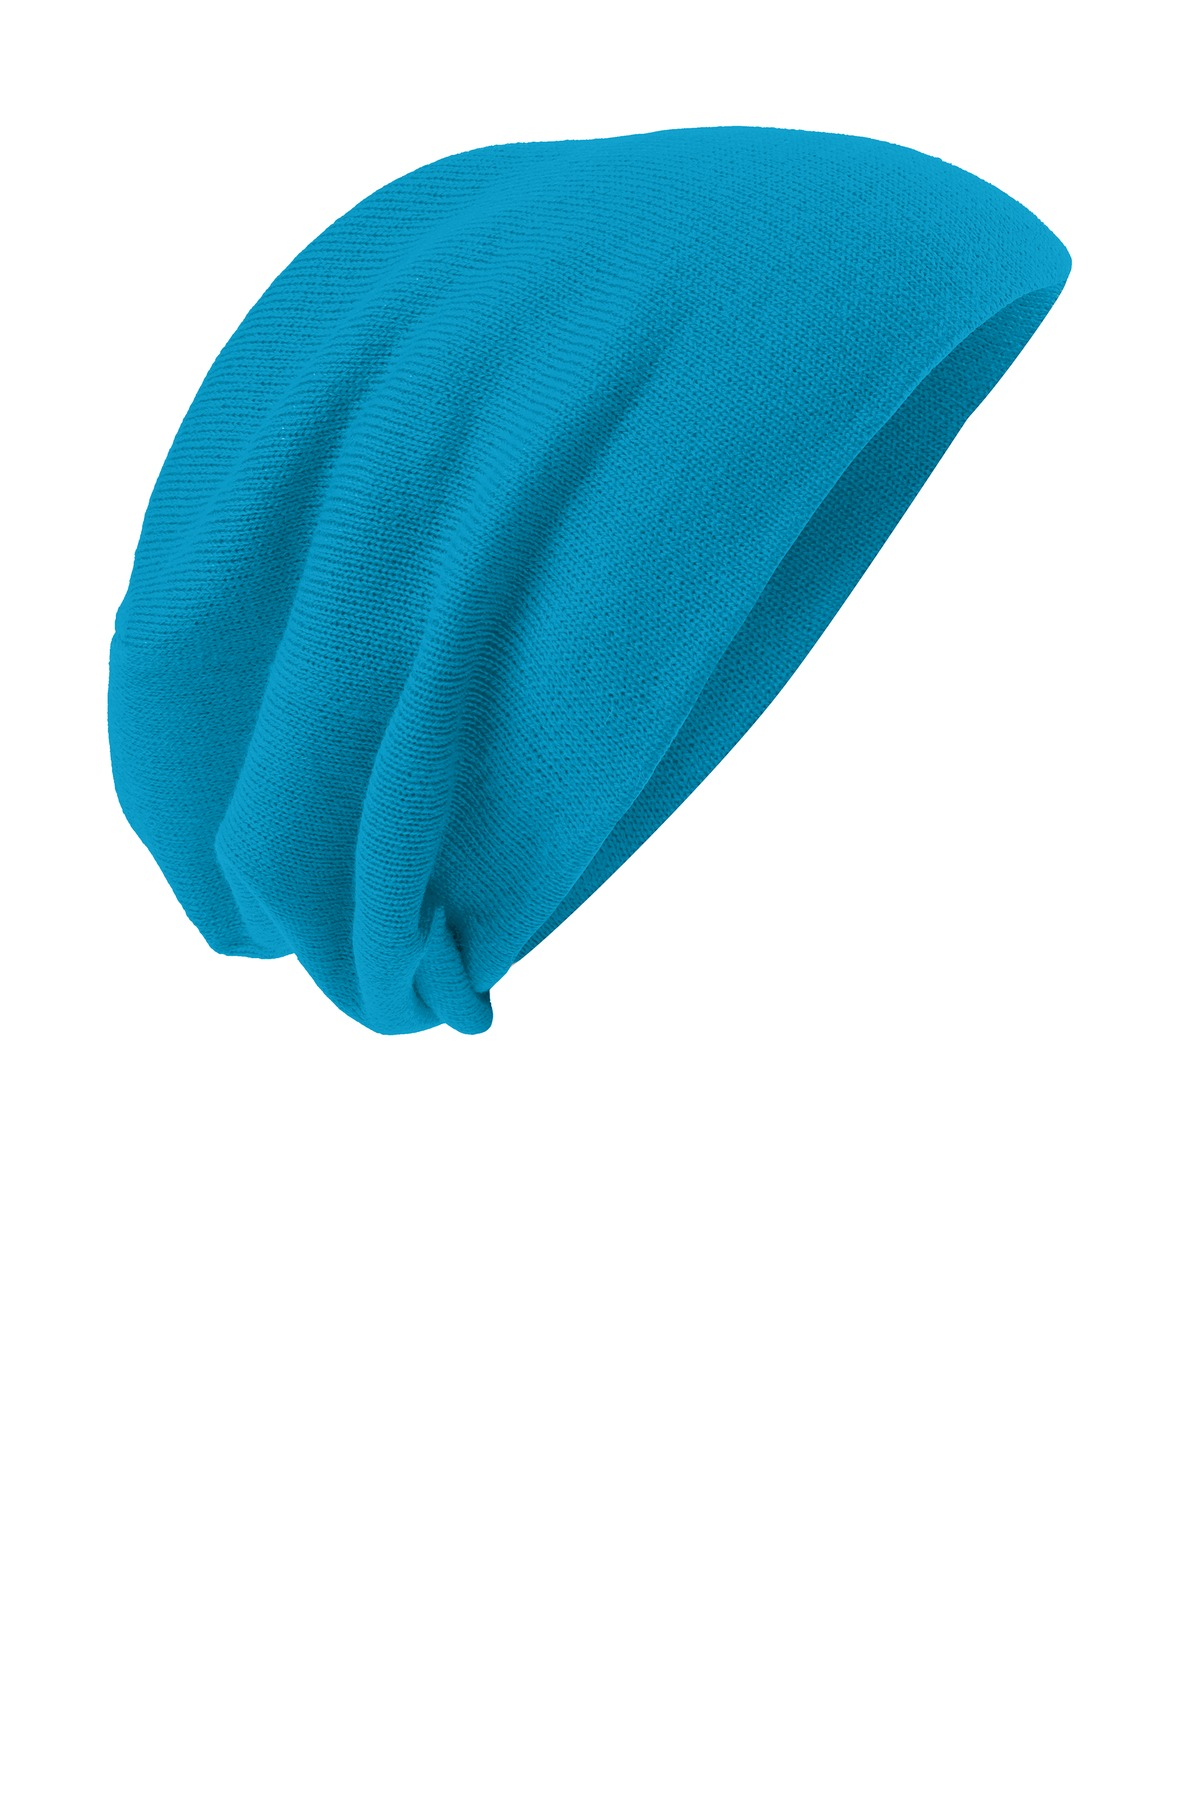 District ®  Slouch Beanie DT618 - Neon Blue